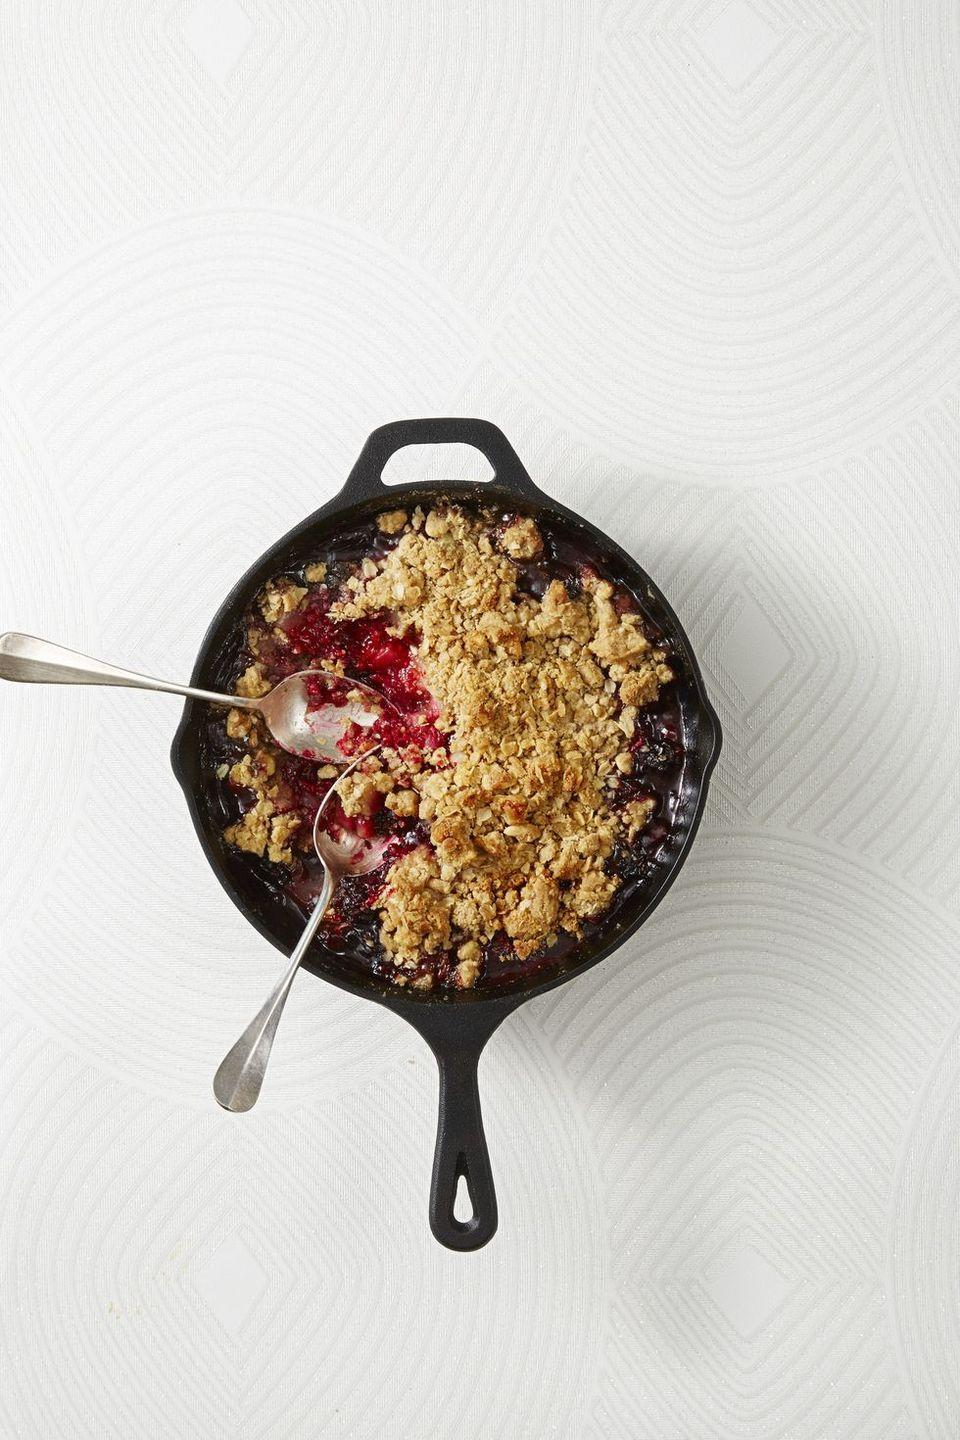 """<p>A hint of allspice and a splash of amaretto creates can't-get-enough flavor in this delicious jammy dessert.</p><p><em><a href=""""https://www.goodhousekeeping.com/food-recipes/dessert/a42825/spiced-pear-berry-crumble-recipe/"""" rel=""""nofollow noopener"""" target=""""_blank"""" data-ylk=""""slk:Get the recipe for Spiced Pear and Berry Crumble »"""" class=""""link rapid-noclick-resp"""">Get the recipe for Spiced Pear and Berry Crumble »</a></em></p><p><strong>RELATED: </strong><a href=""""https://www.goodhousekeeping.com/holidays/christmas-ideas/g745/christmas-desserts/"""" rel=""""nofollow noopener"""" target=""""_blank"""" data-ylk=""""slk:50+ Festive & Delicious Christmas Desserts You'll Love"""" class=""""link rapid-noclick-resp"""">50+ Festive & Delicious Christmas Desserts You'll Love</a><br></p>"""